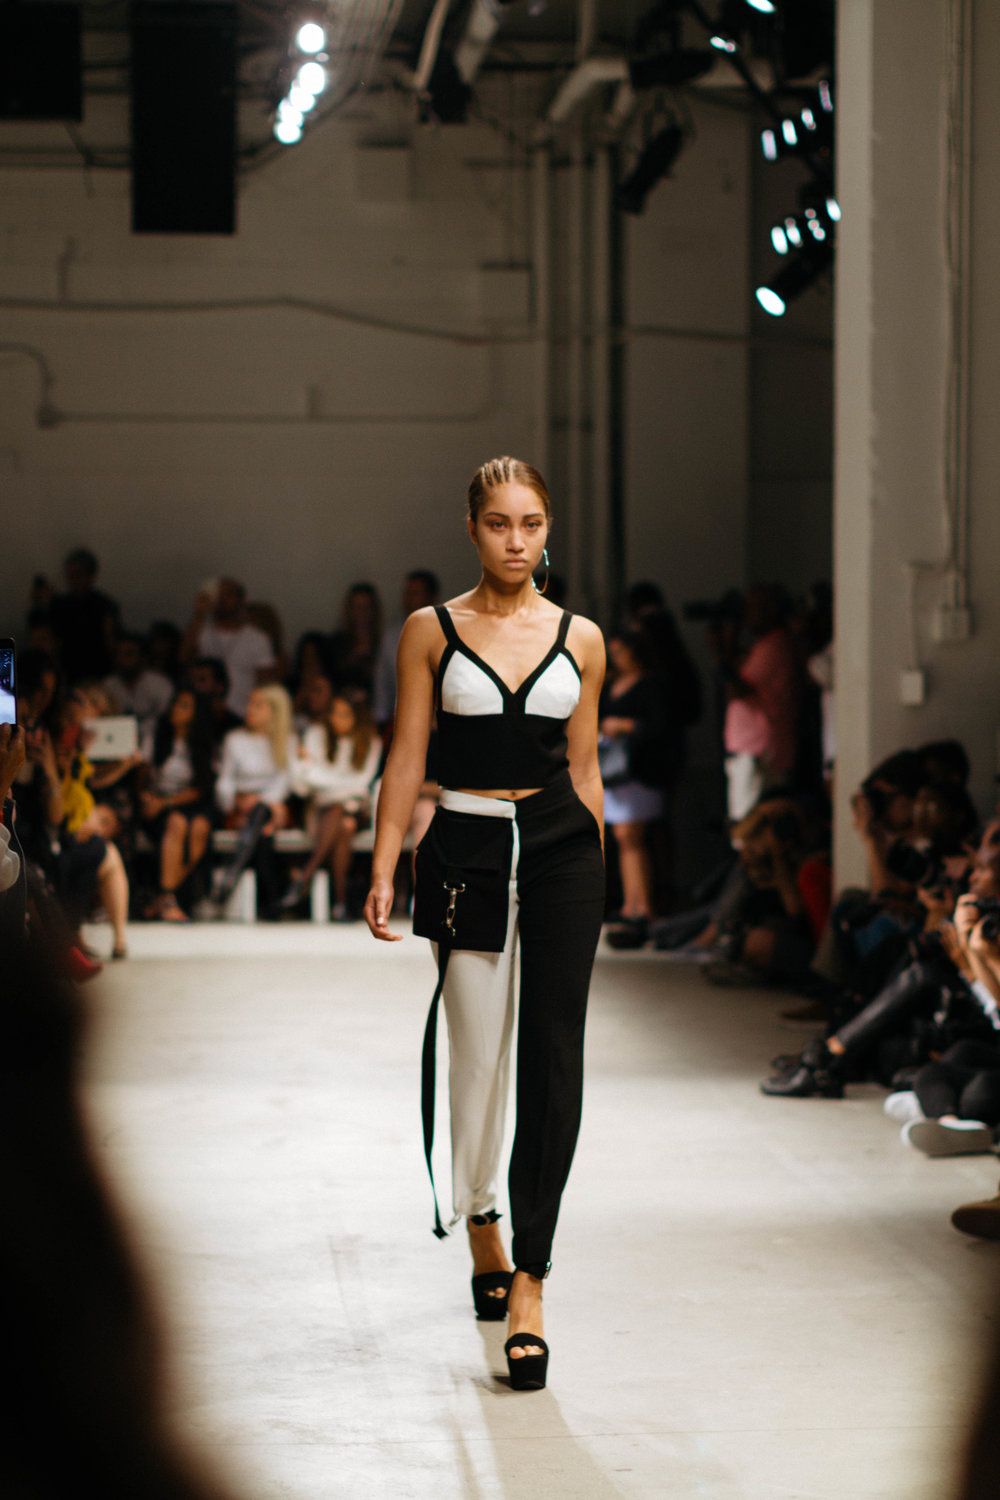 New York Fashion Week 2017 - @LorenzoMitil